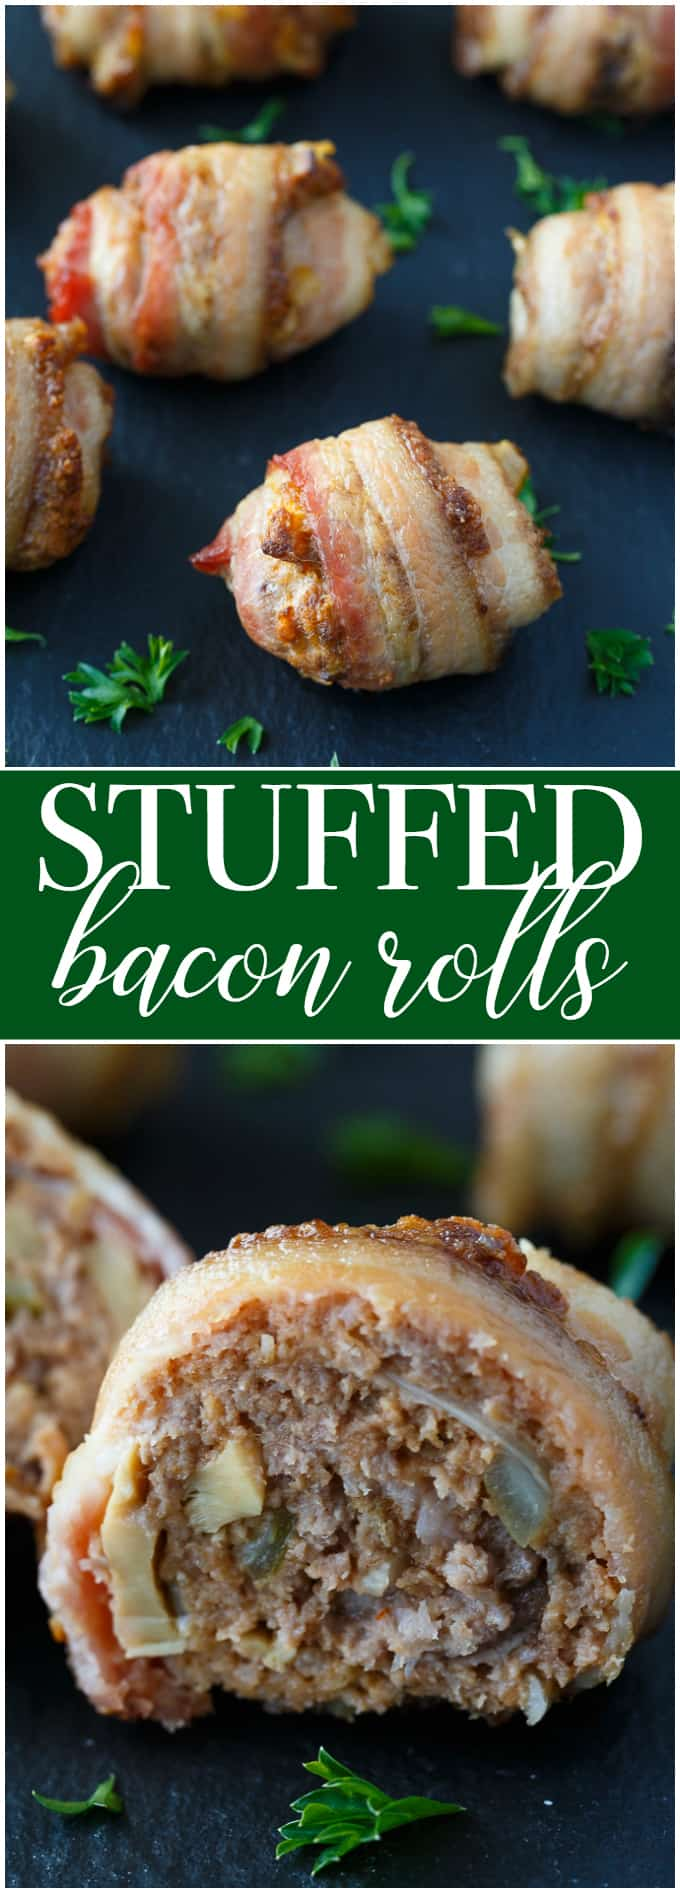 Stuffed Bacon Rolls - A savoury appetizer packed full of yummy flavour. Everything is better wrapped in bacon!